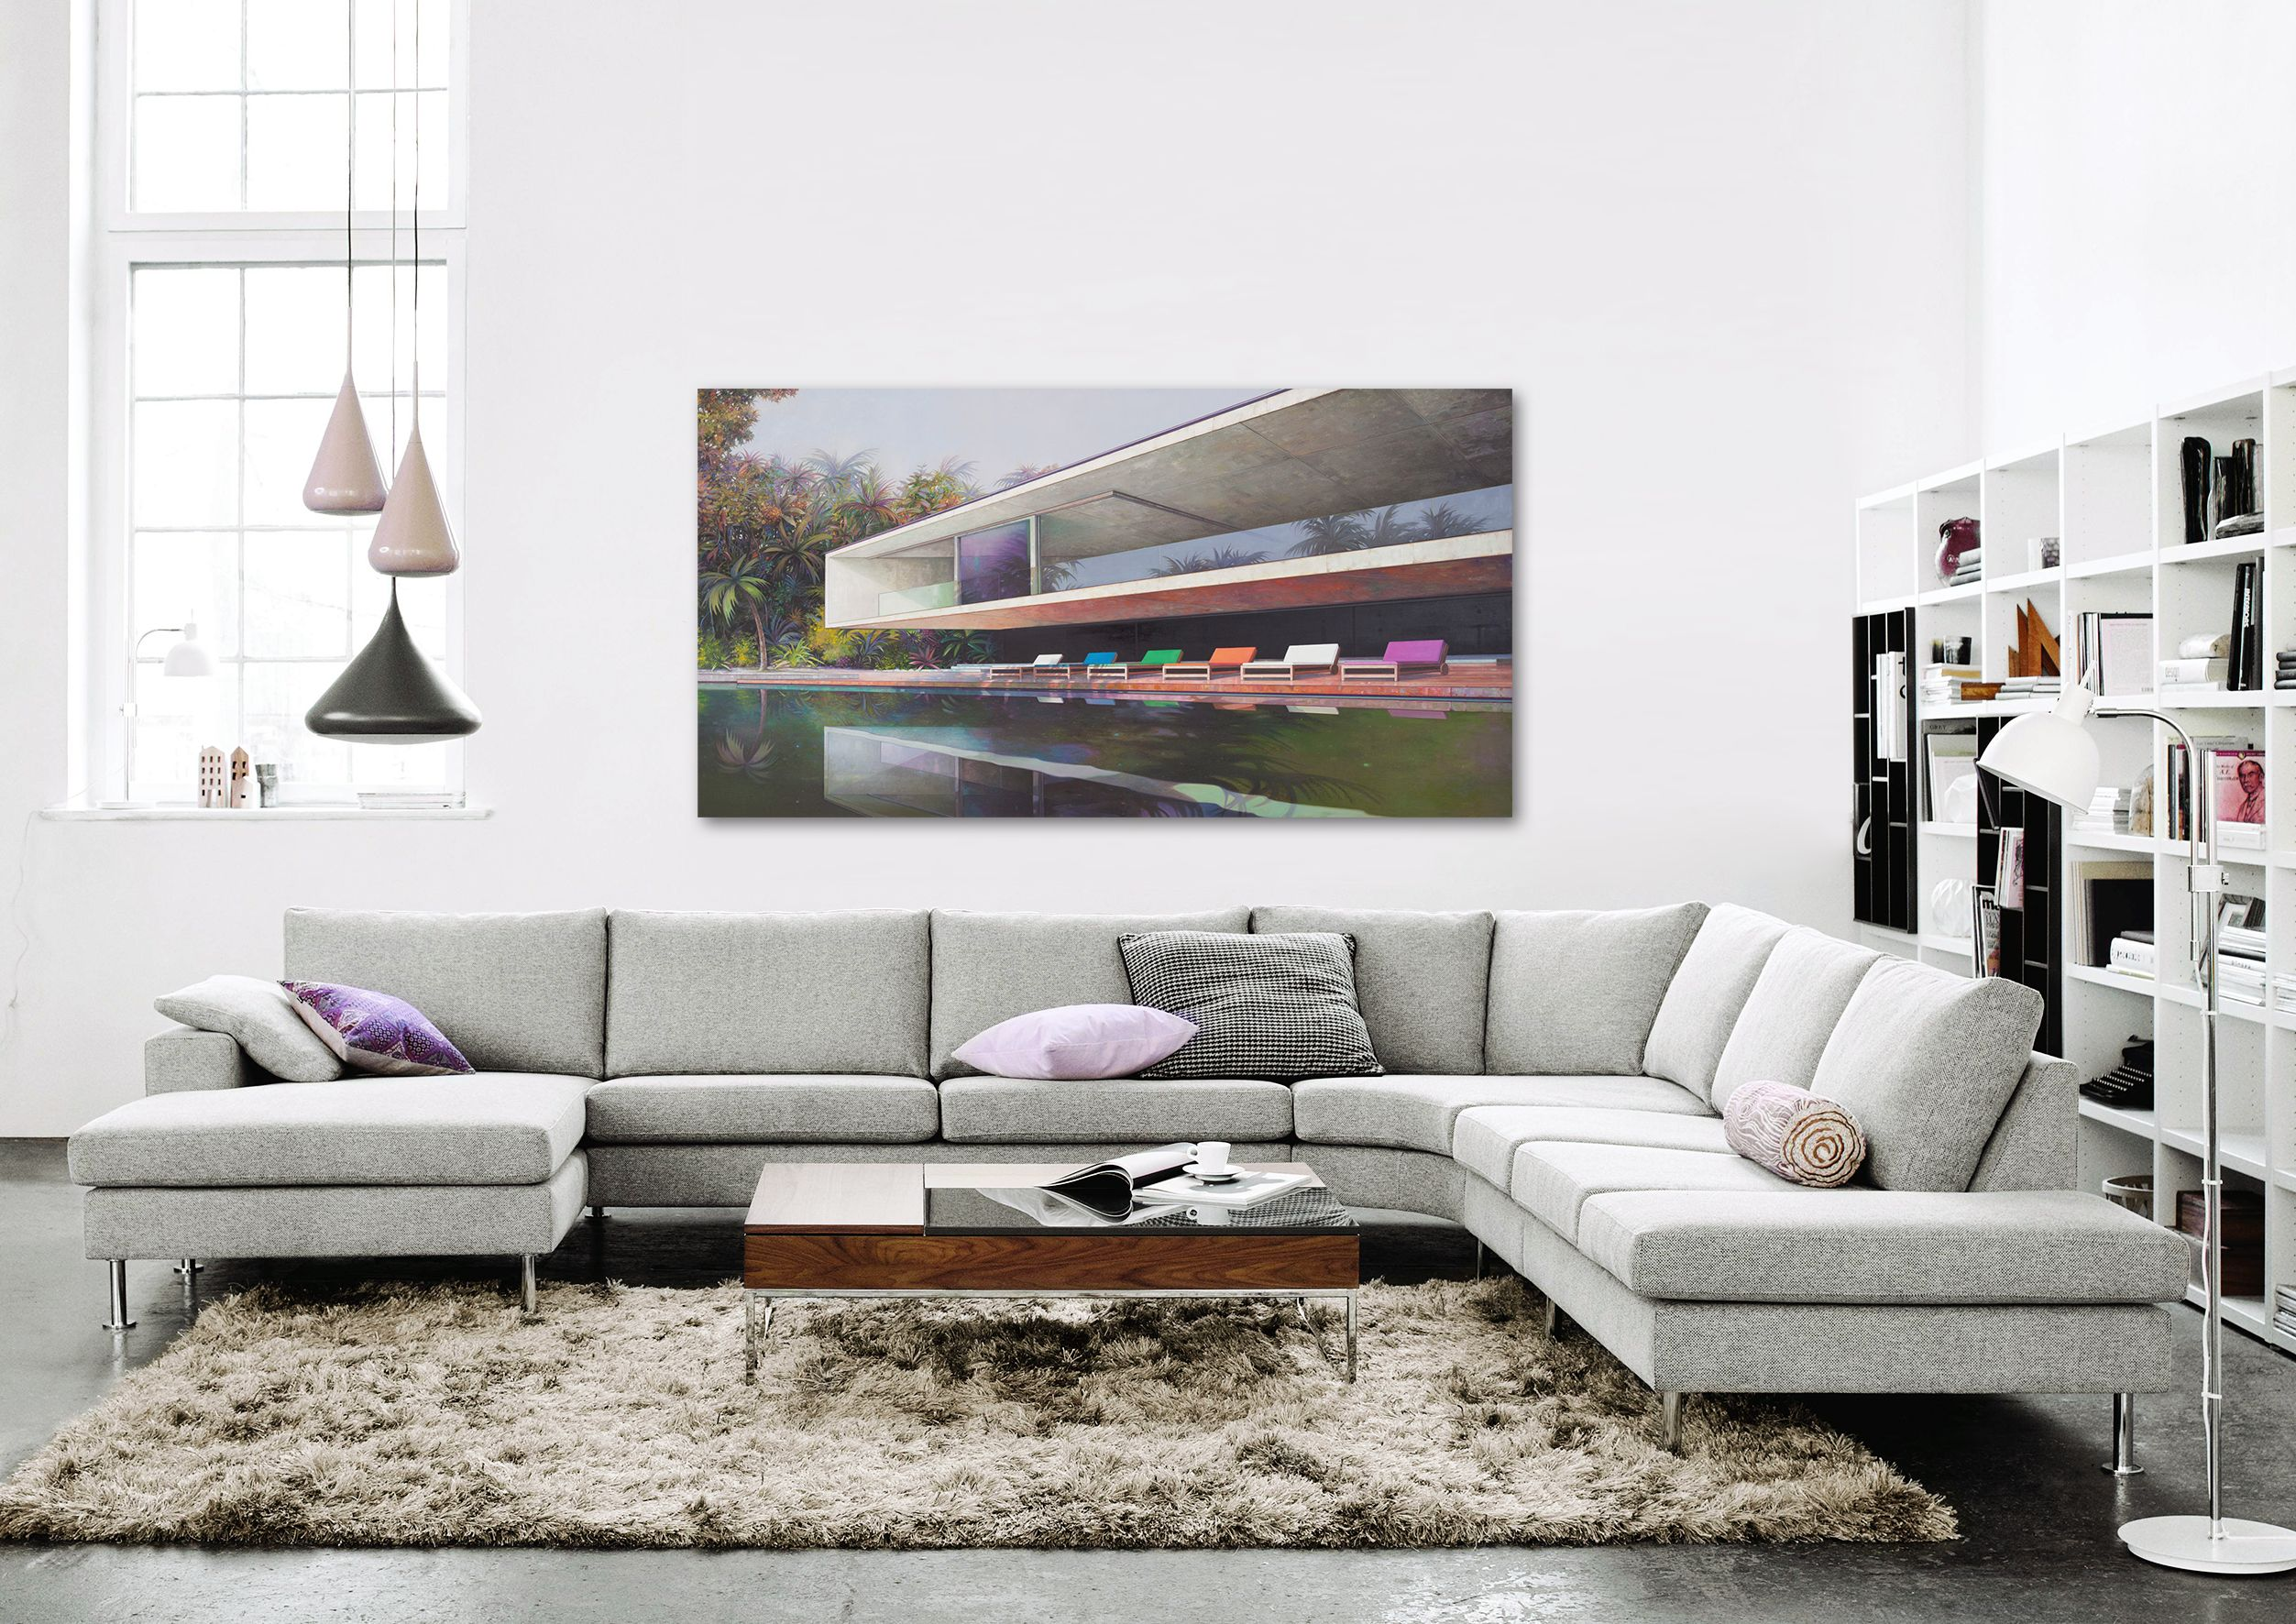 Work by jens hausmann furnishings by boconcept